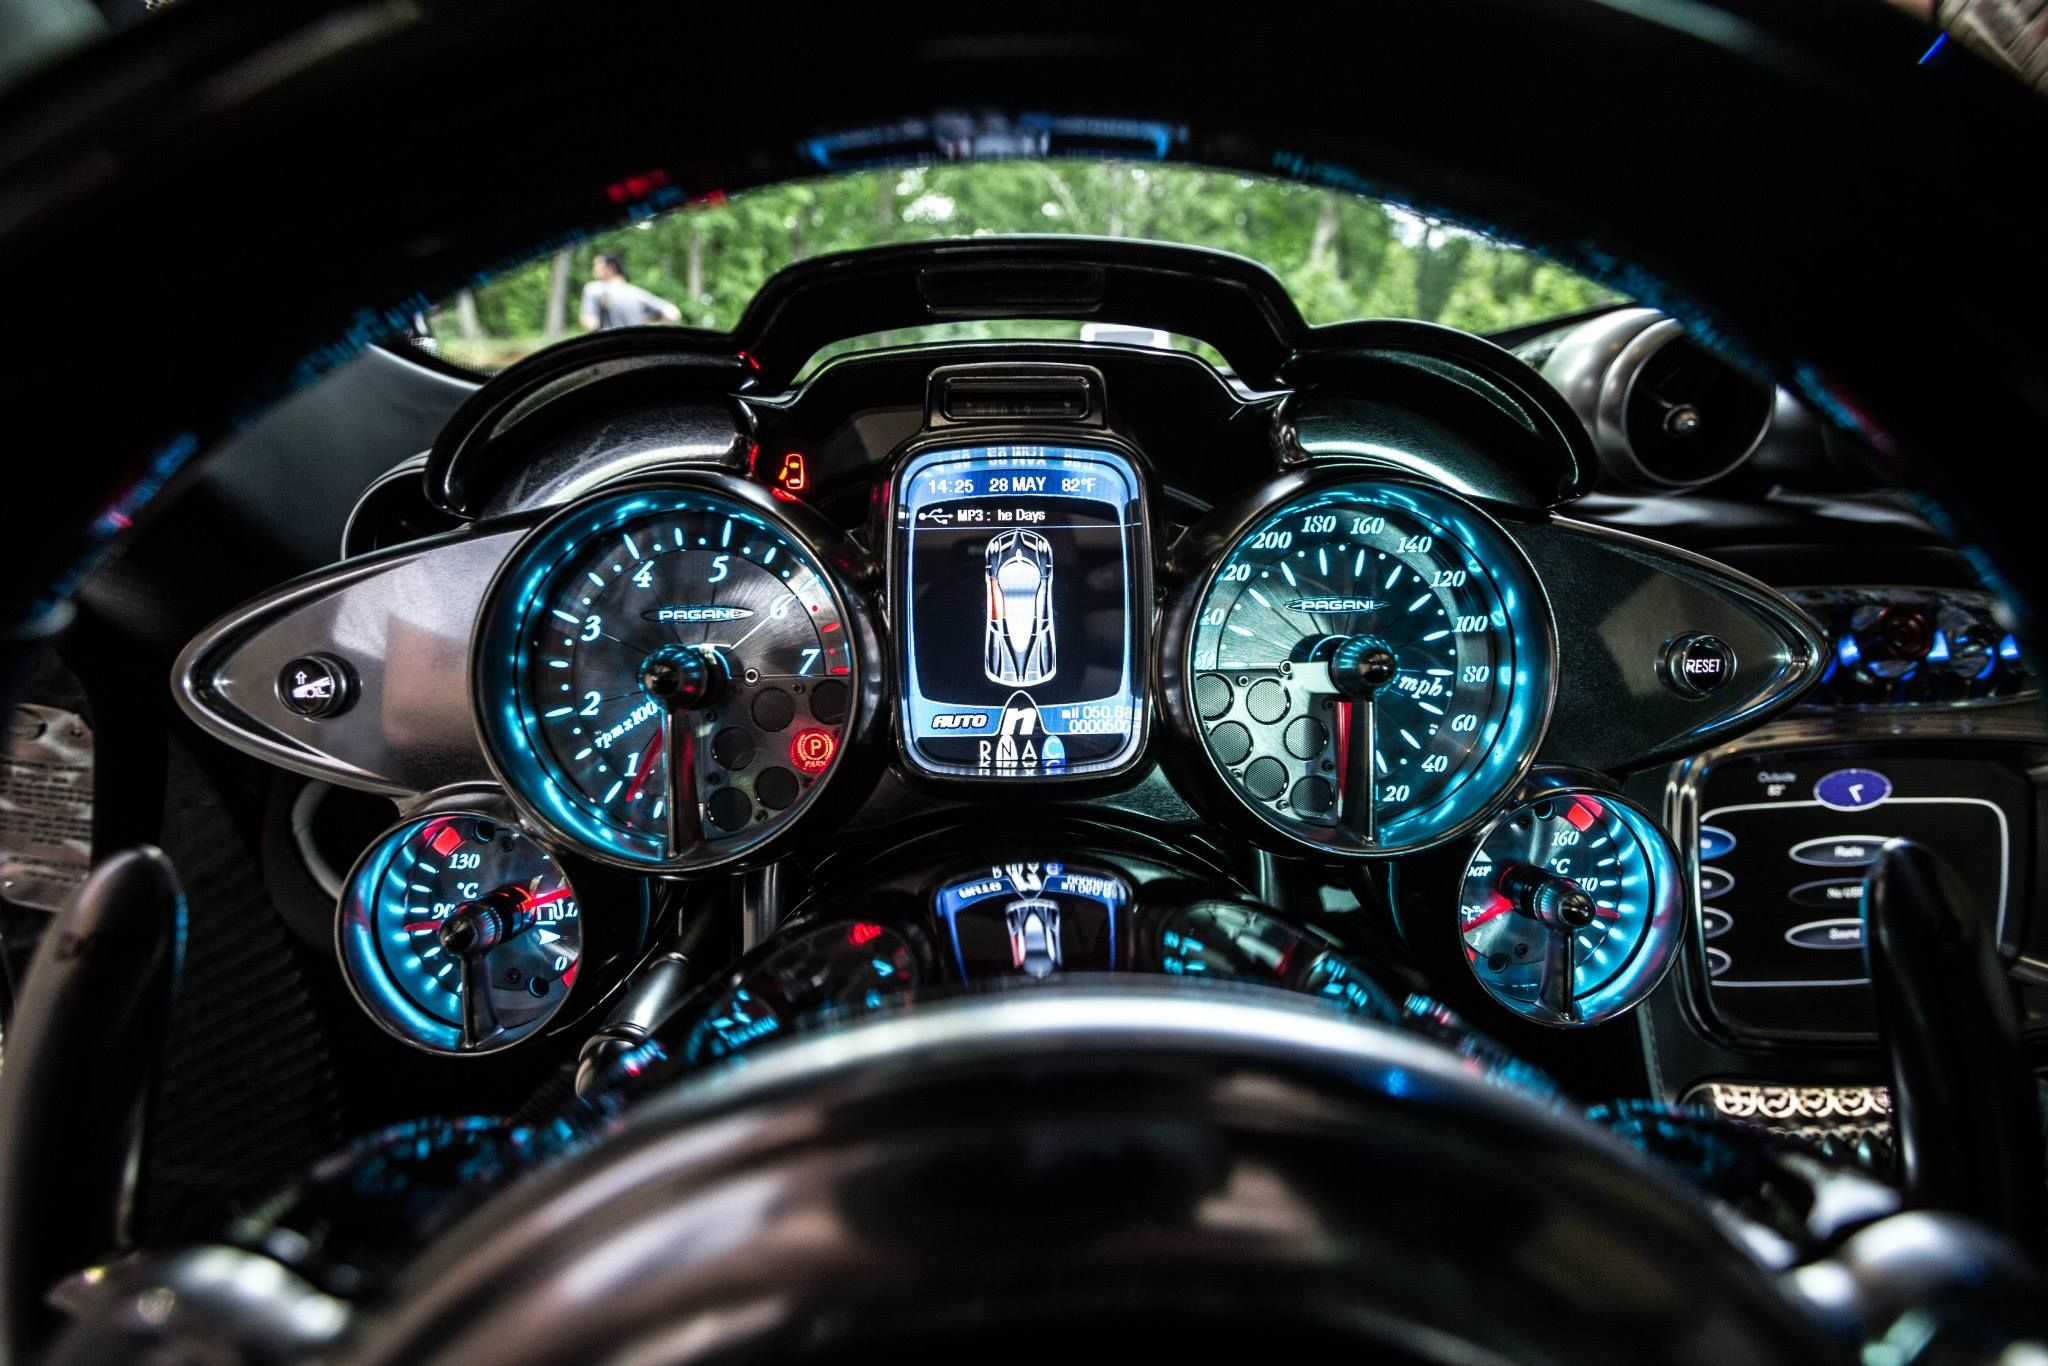 2016 Pagani Huayra Interior Good Quality Wallpaper C A R S